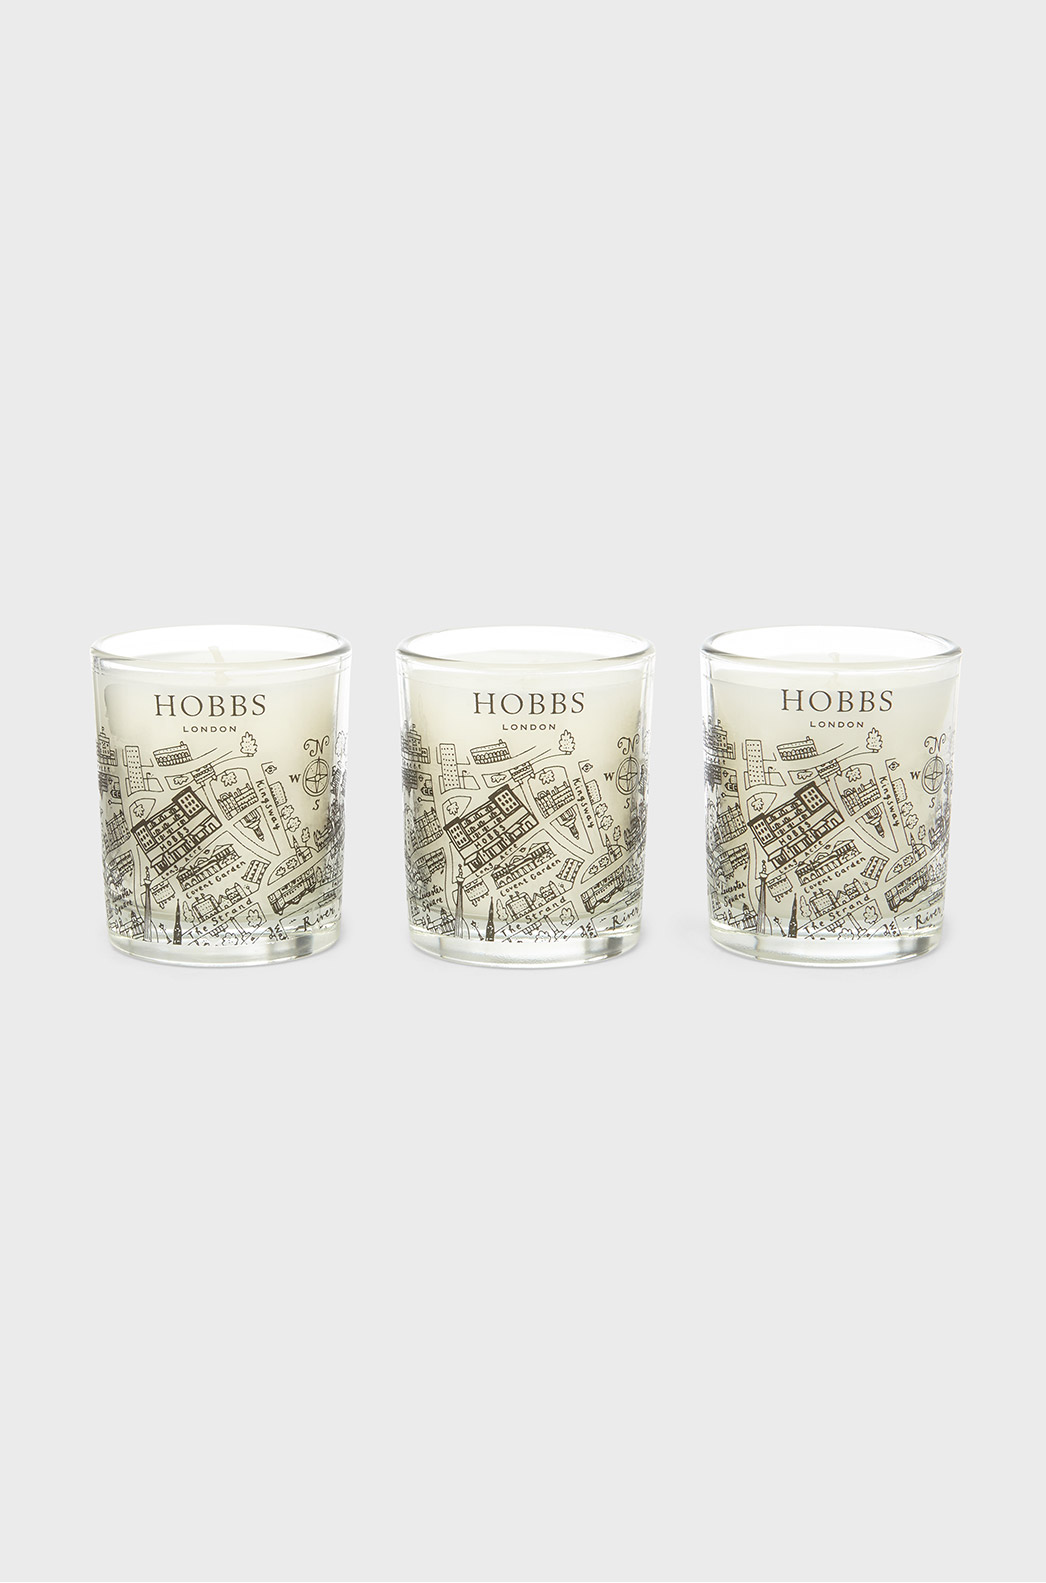 Set of three Hobbs candles presented in glass jars with illustrations of Hampstead.